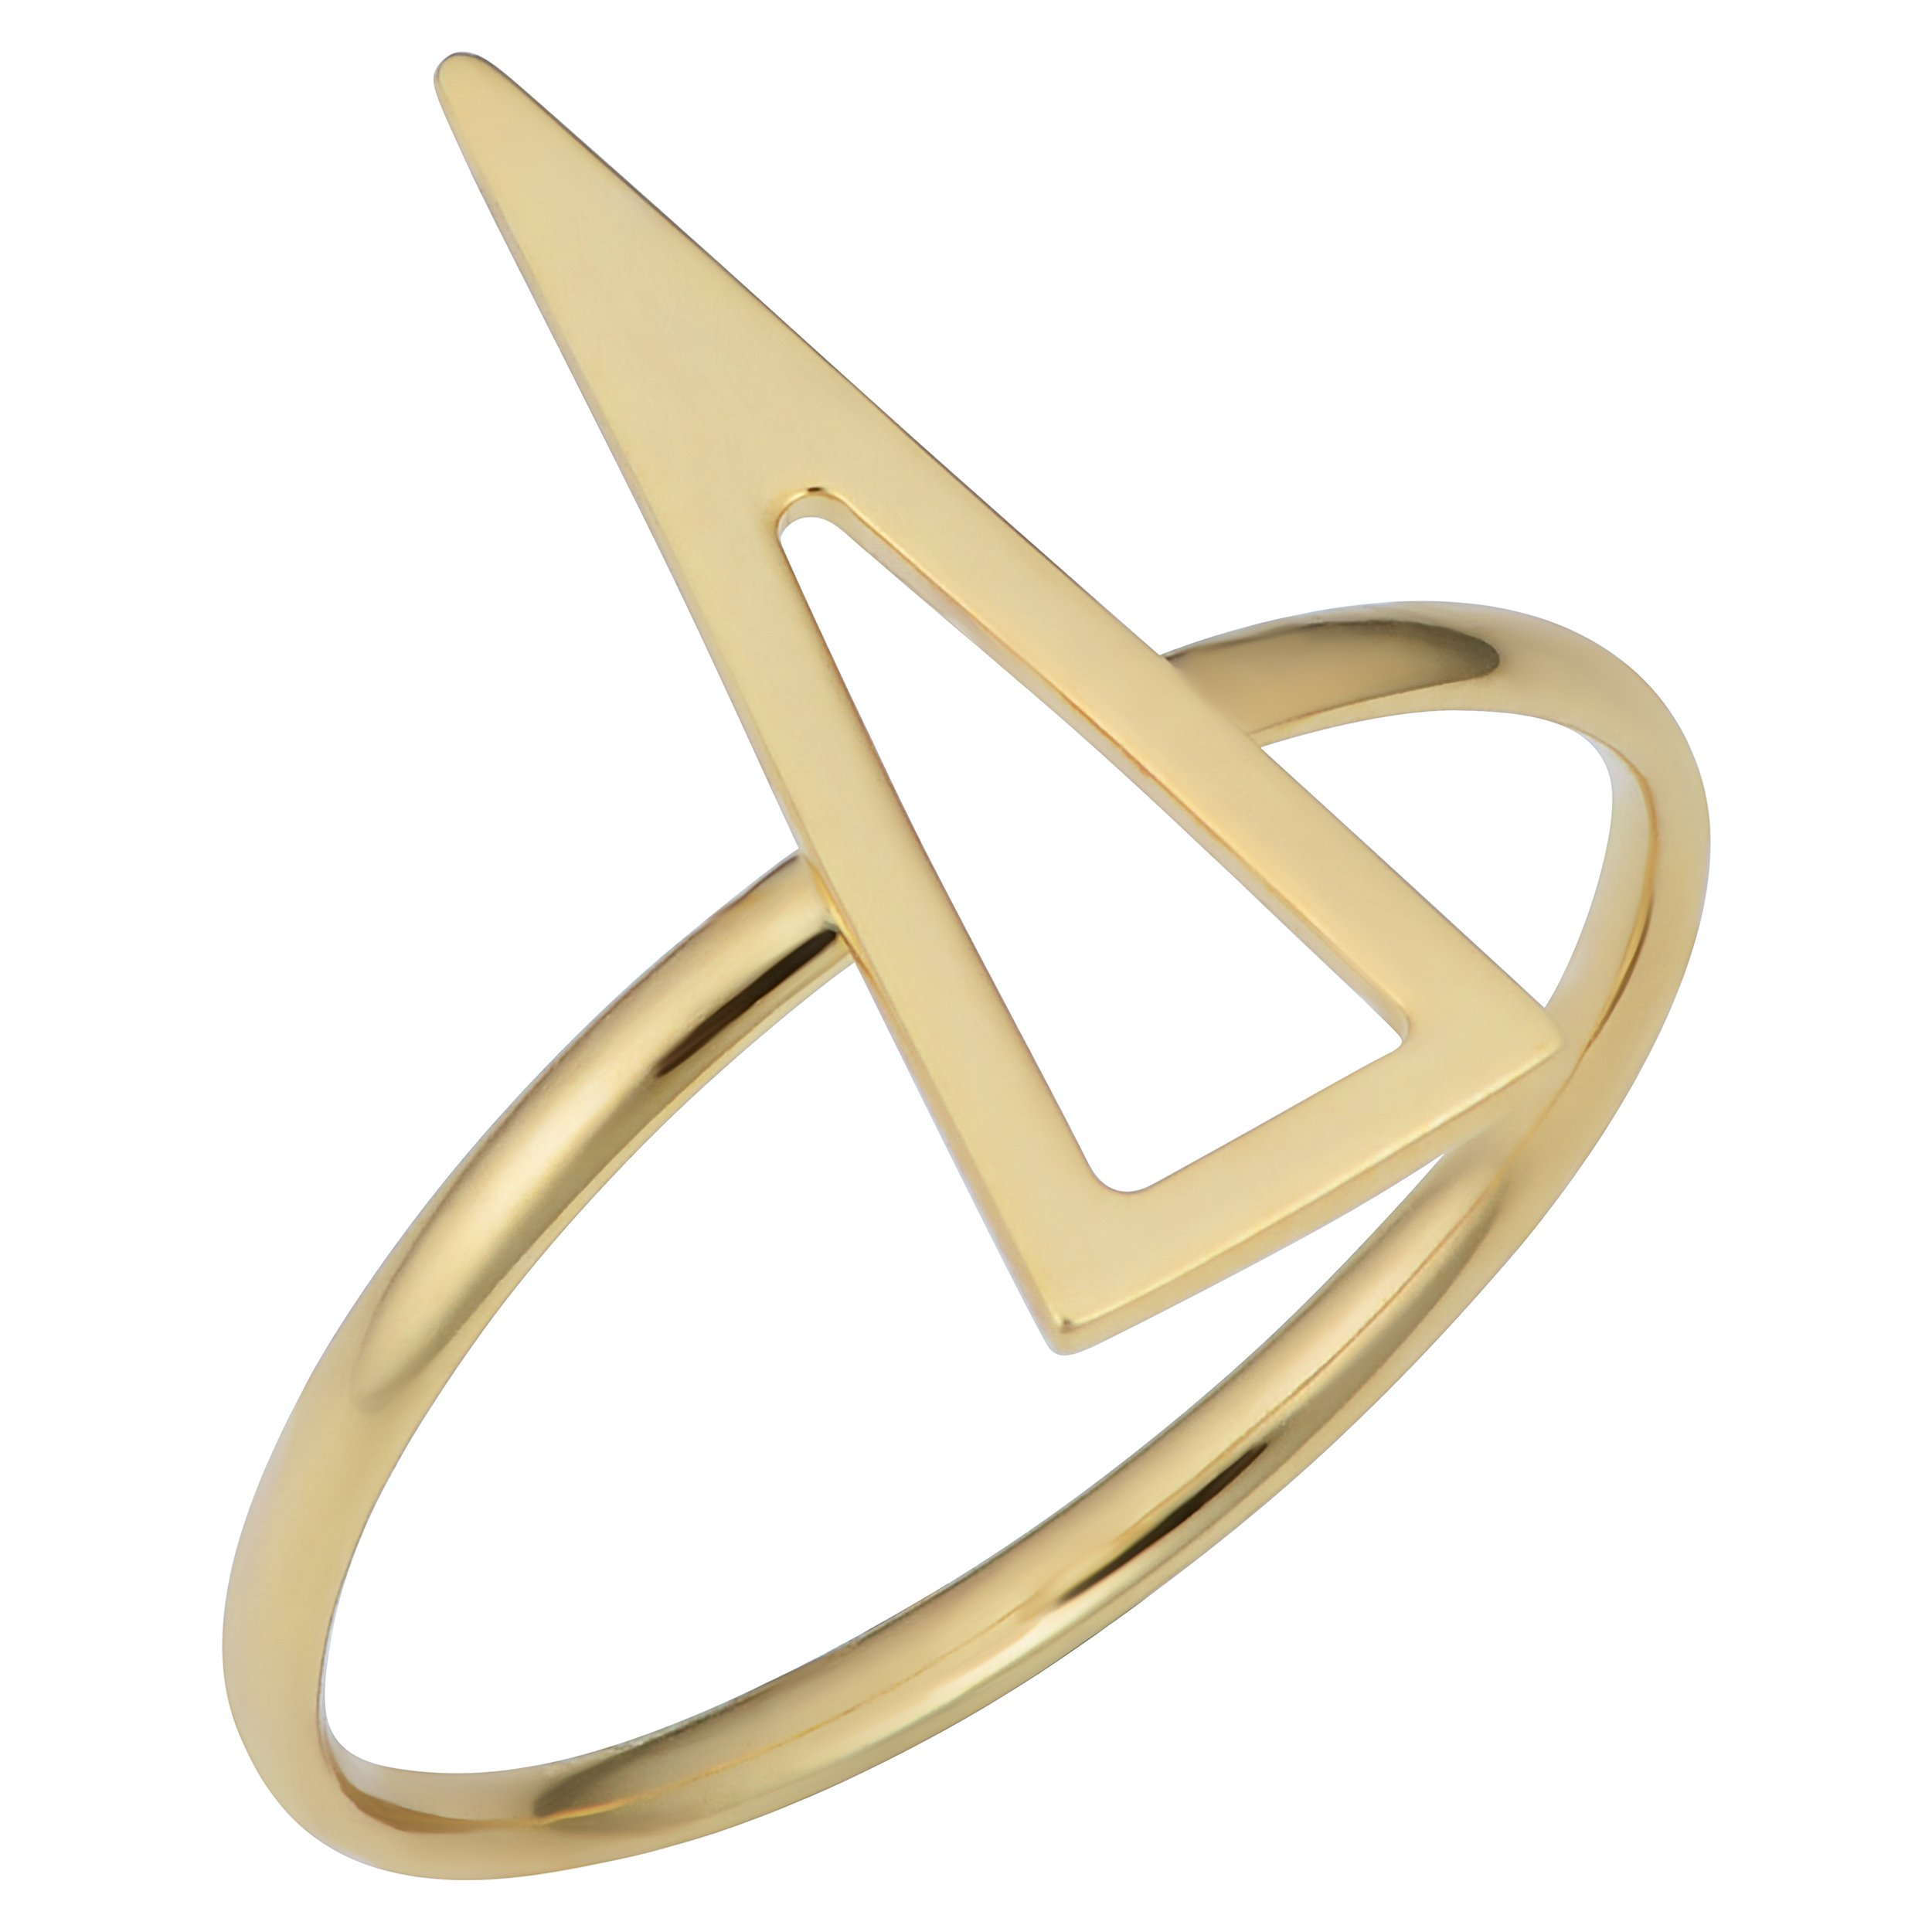 Kooljewelry 14k Yellow Gold Triangle Ring (size 9) by Kooljewelry